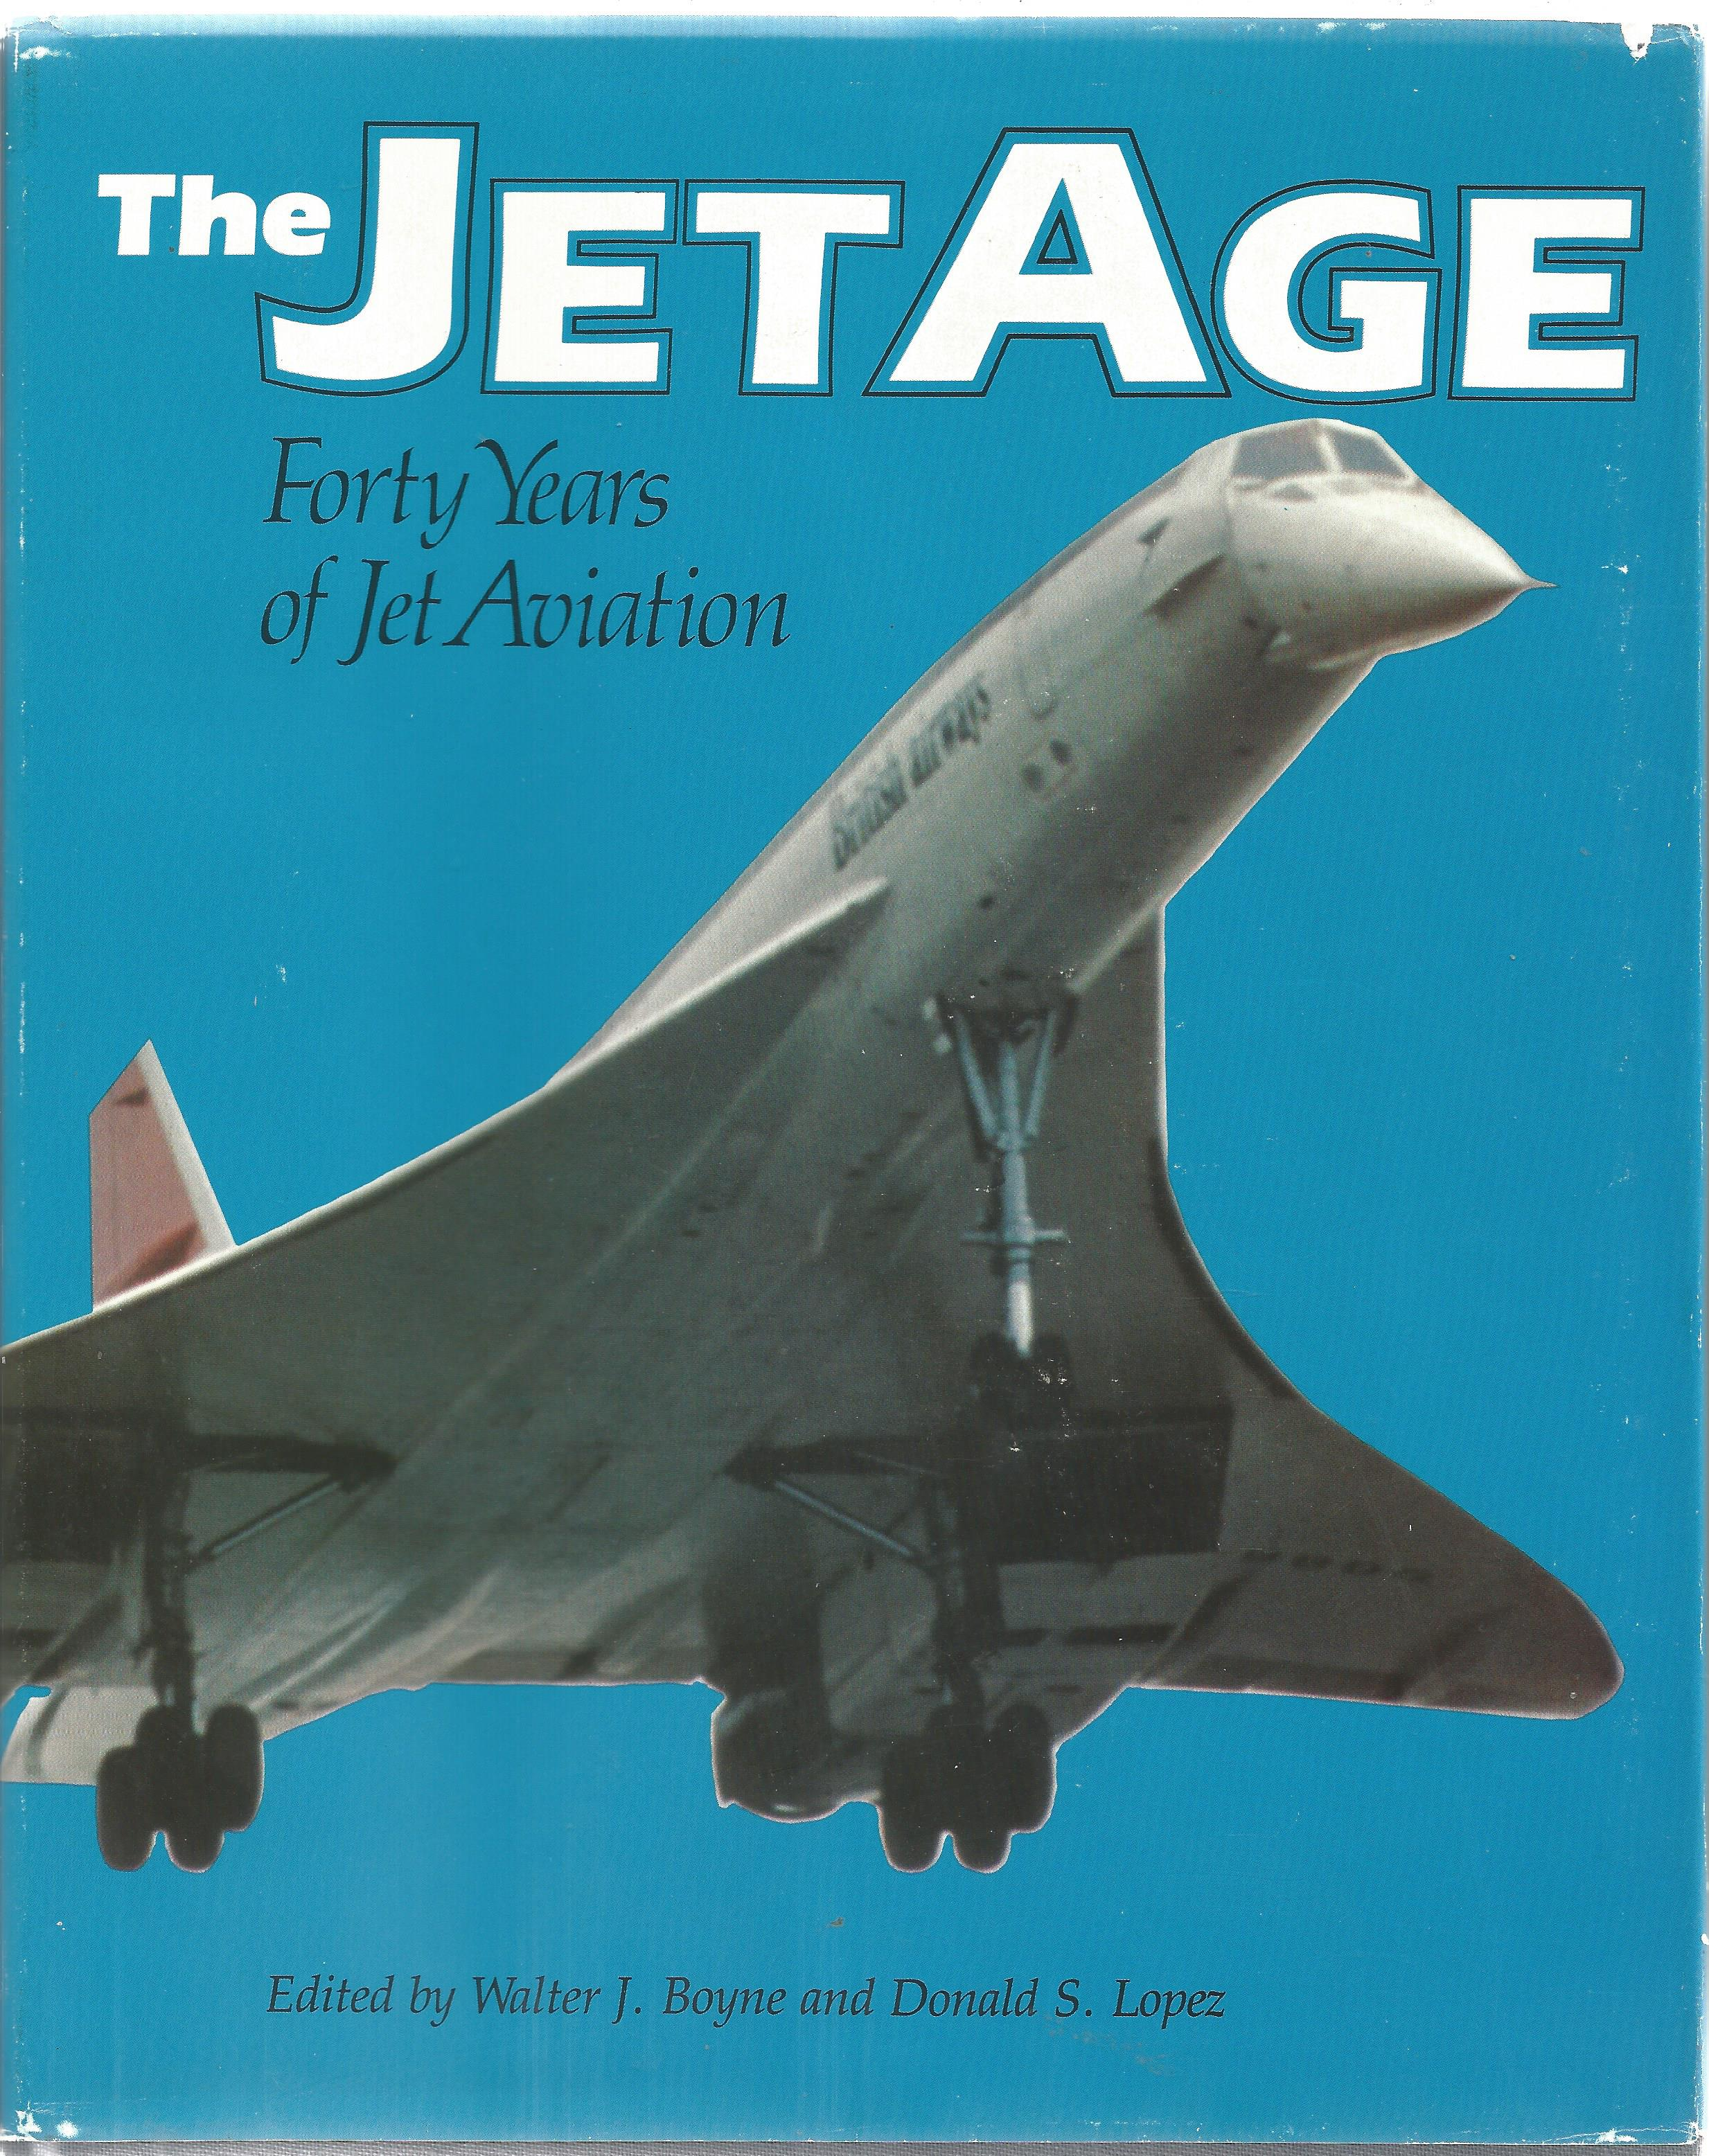 Lot 32 - Frank Whittle and Hans Von Ohain signed The Jet Age hardback book dust cover slightly torn on back